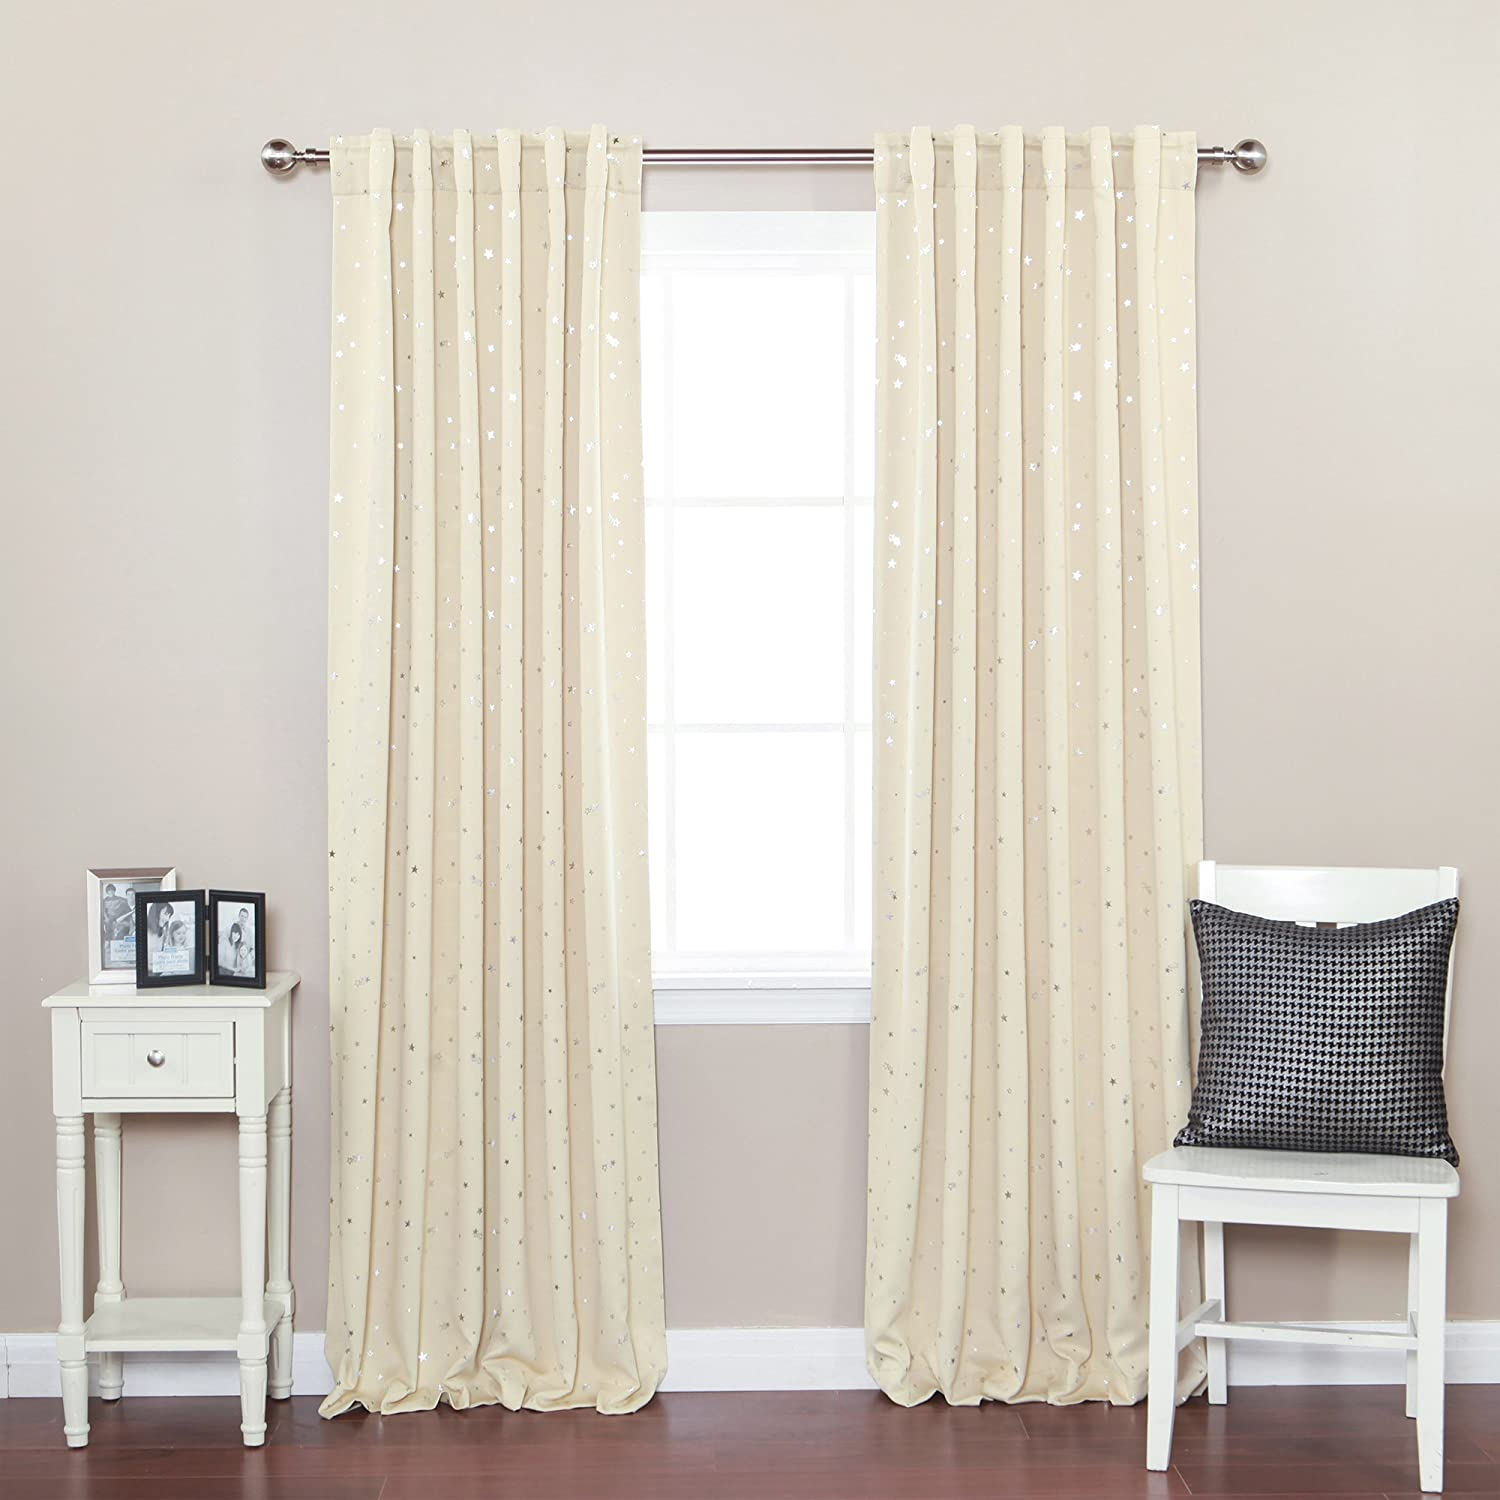 blackout curtain curtains the bestseekers buy to thermal in amazon best